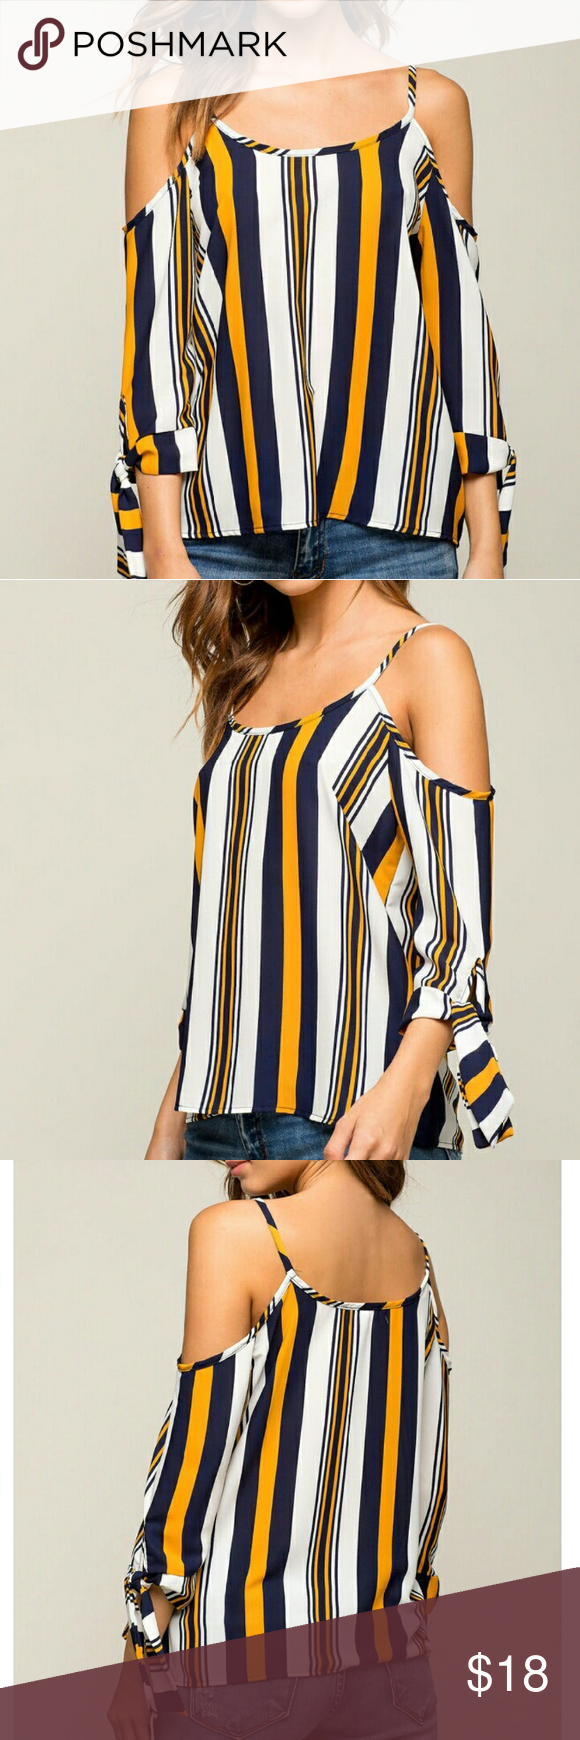 """NEW! Stripe It Cold Shoulder Top New with Tags This total chic chiffon blouse features a flattering vertical striped body, cold shoulders and generous three-quarter sleeves with tied cuffs. Super round neck and back.  Made in U.S.A. Measures approx. 21"""" long, 36""""chest, 38""""waist, 14""""sleeve length  100% Polyester Hand wash cold Model wears a size S Model is 5'7"""", bust 32"""", waist 24"""", hips 36"""" ✔All Reasonable Offers Accepted  ✔Bundle Discounts! ❌NO Lowballing Thank you for stopping by!  Make an…"""